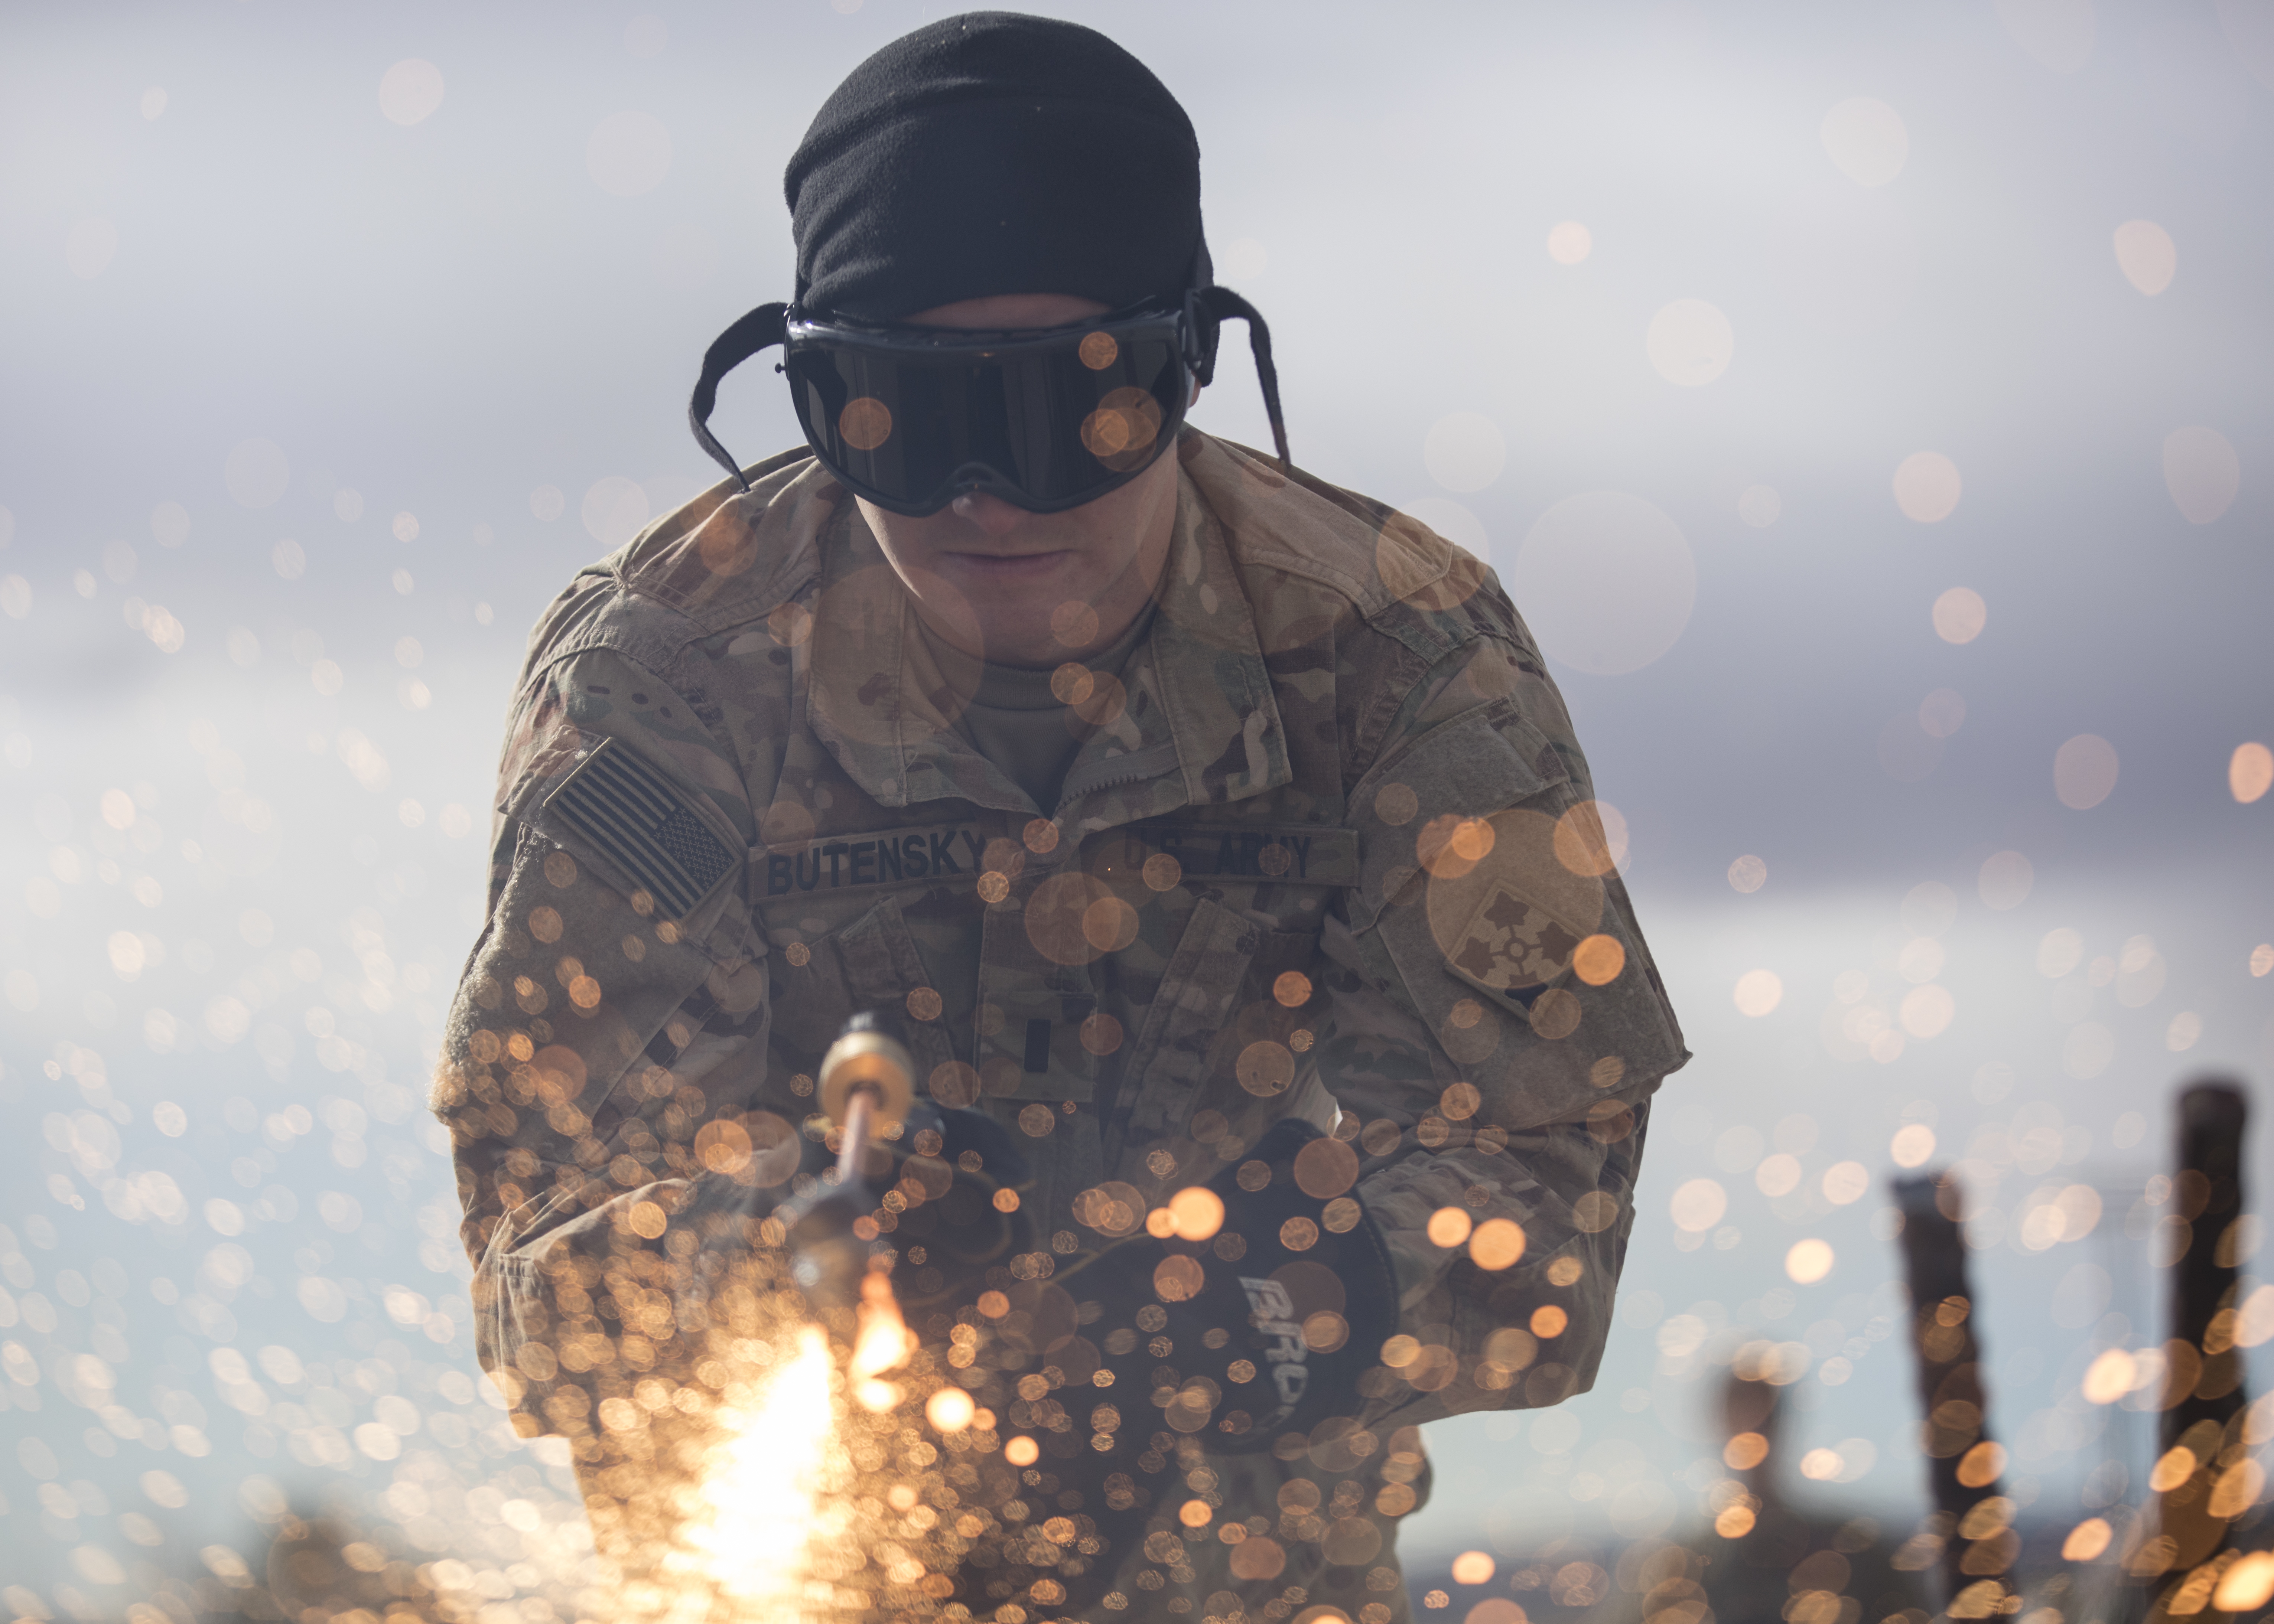 1st Lt. Daniel Butensky, an engineer officer assigned to 299th Brigade Engineer Battalion, 1st Stryker Brigade Combat Team, 4th Infantry Division, cuts through metal with a Broco torch in sub-freezing temperatures during the Best Sapper Competition, Fort Carson, Colorado, December, 6, 2017. U. S. Army photo by Sgt. Micah Merrill